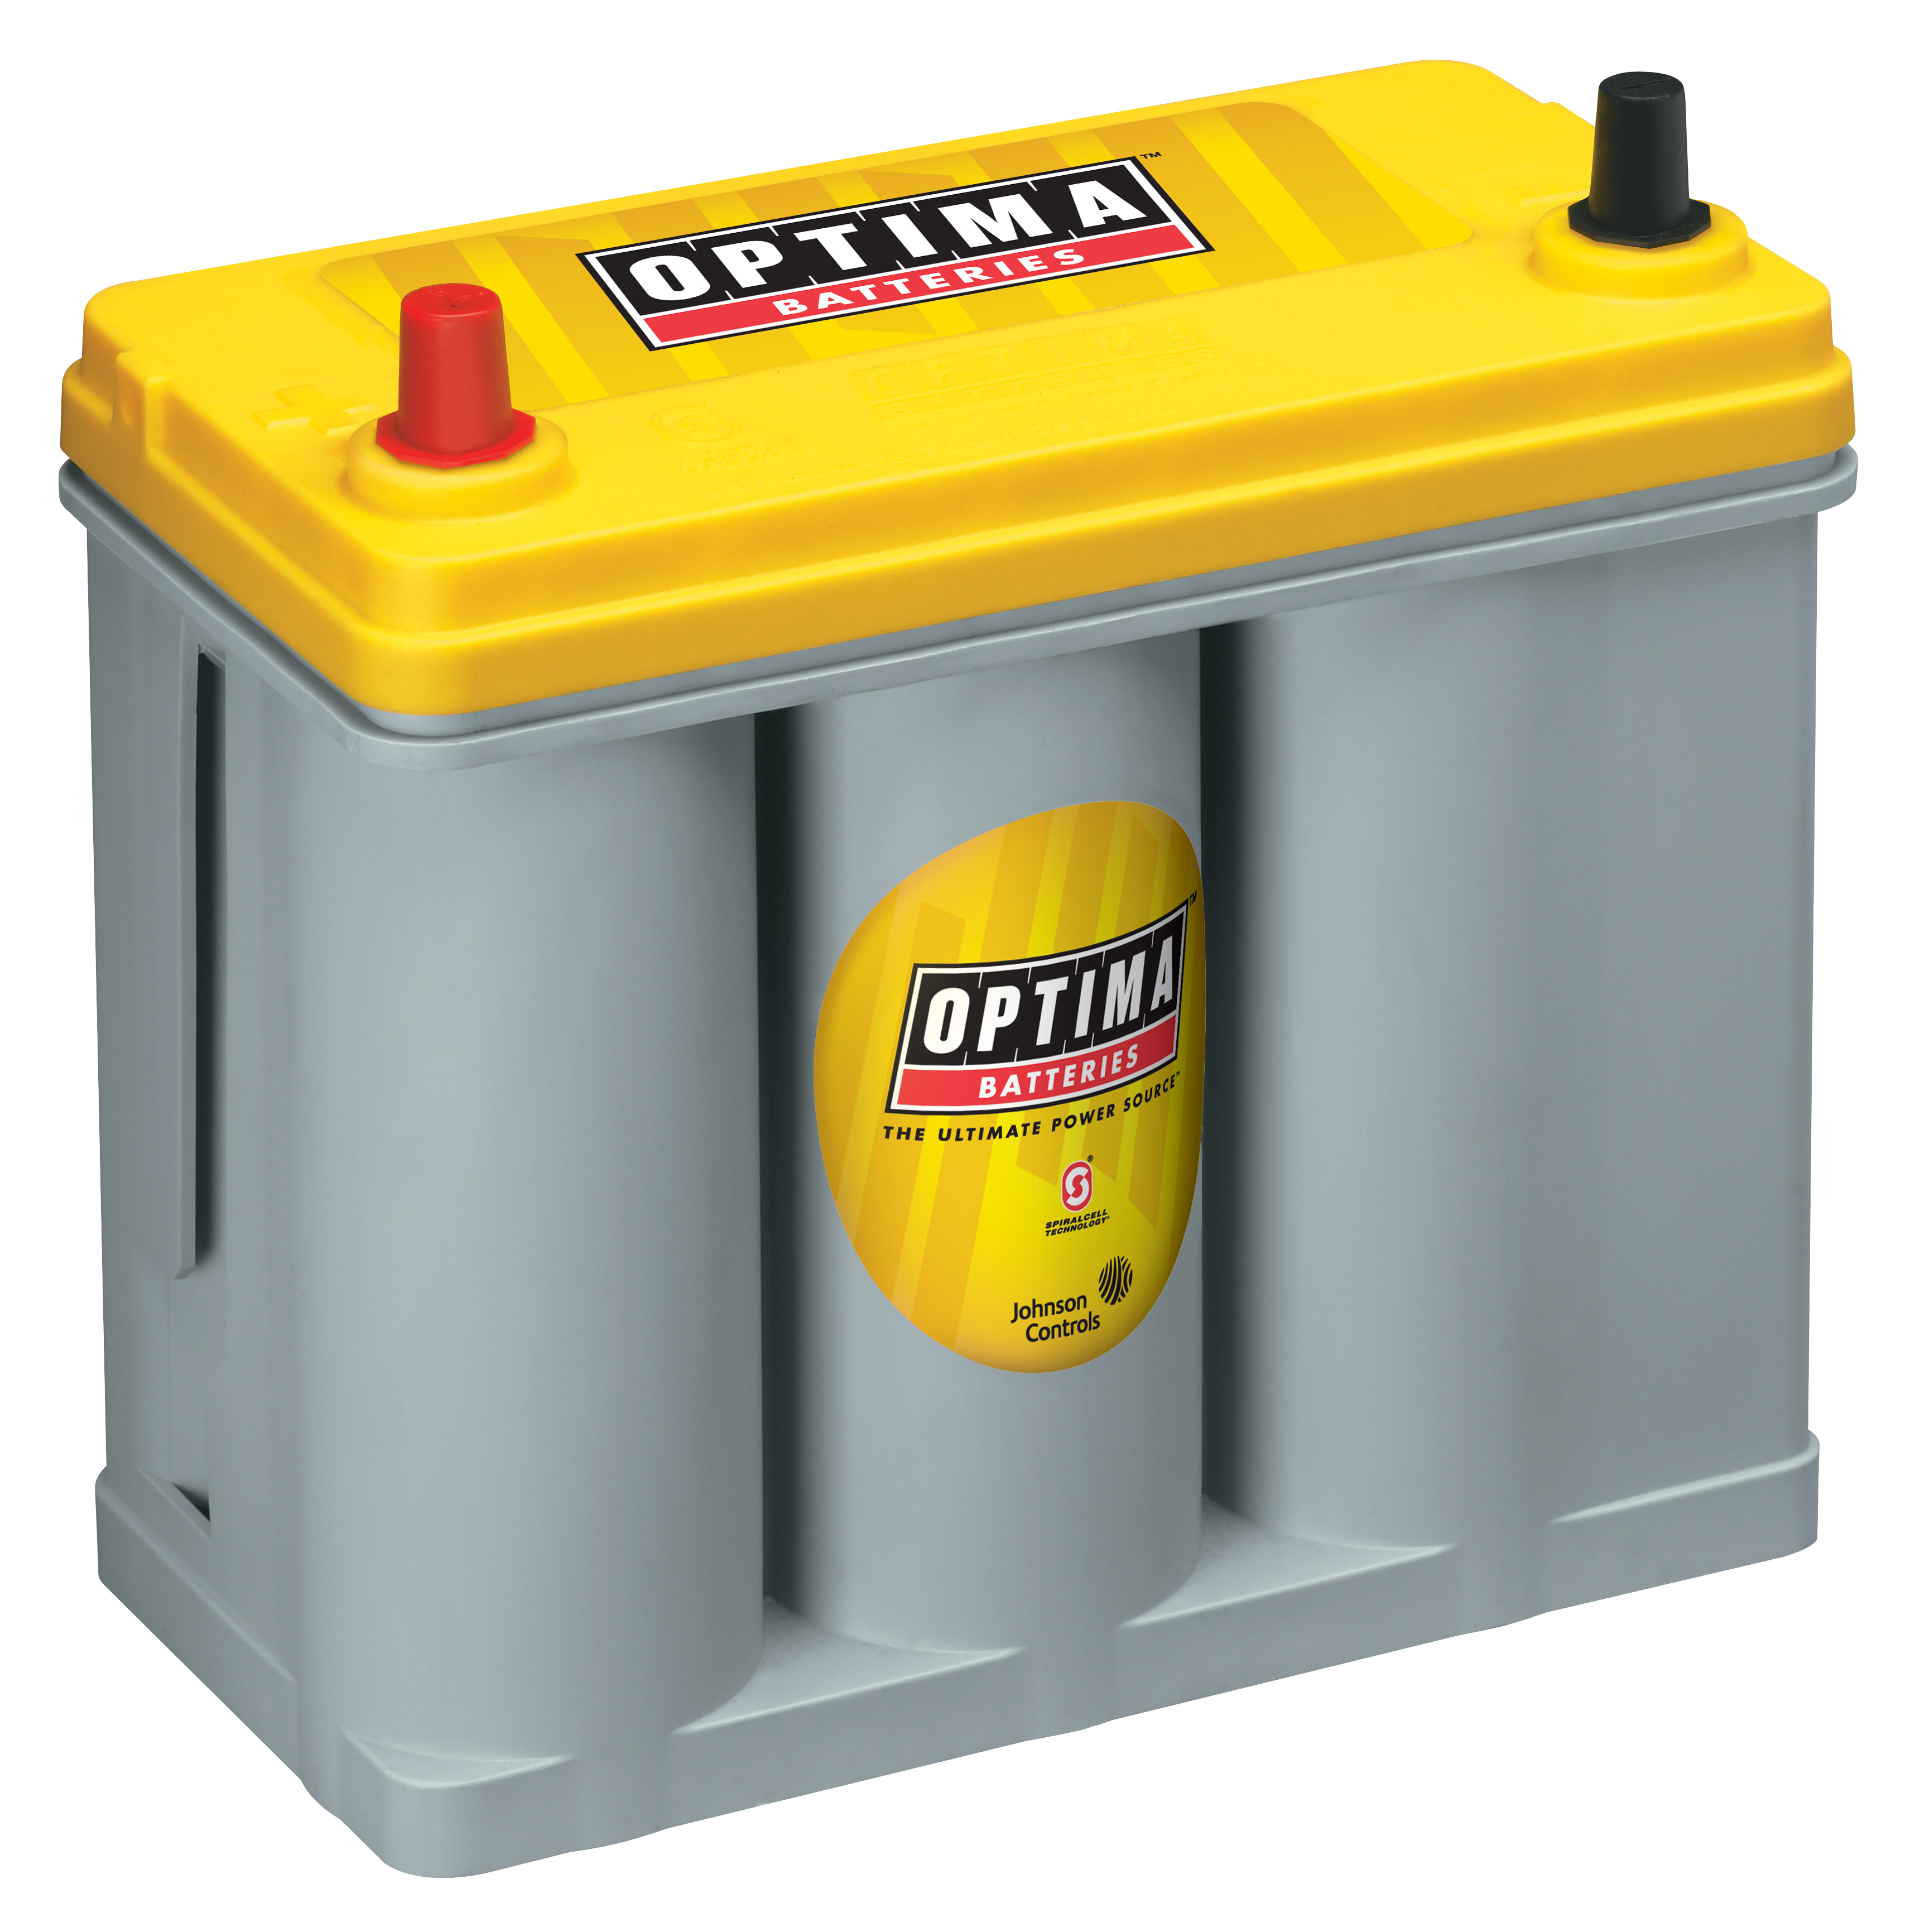 DS46B24R YELLOWTOP® Prius® Auxiliary Battery 8171-767